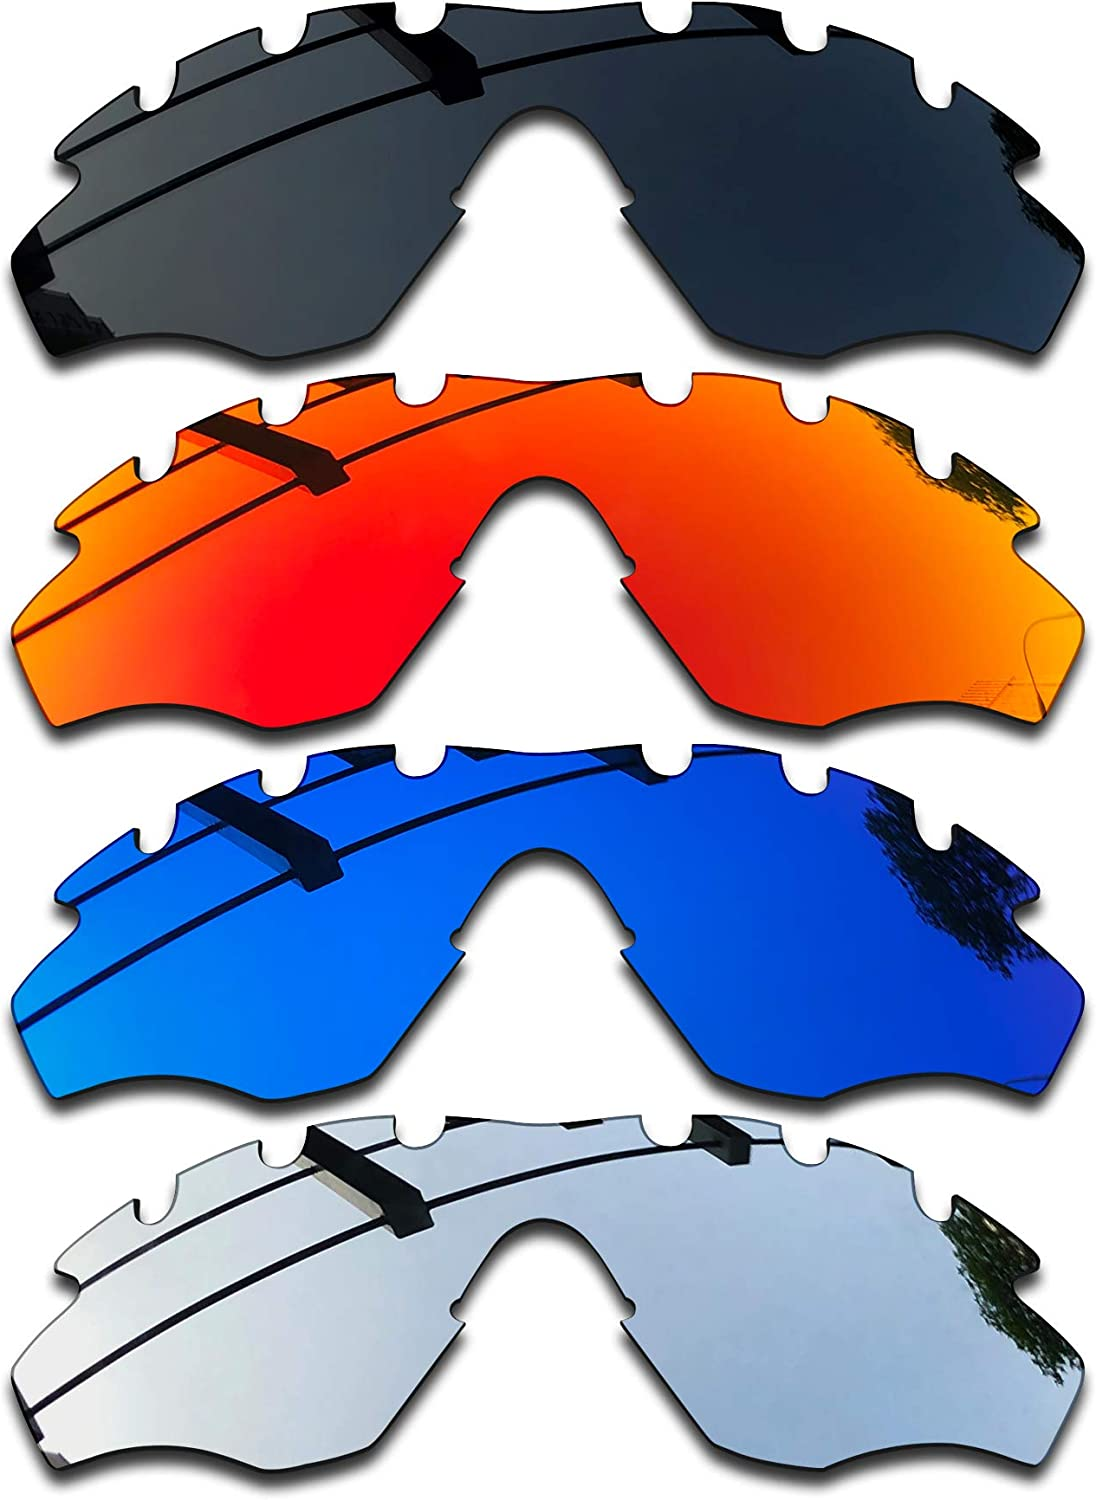 SEEABLE Premium Polarized Mirror Replacement Lenses for Oakley M2 Frame XL Vented Sunglasses